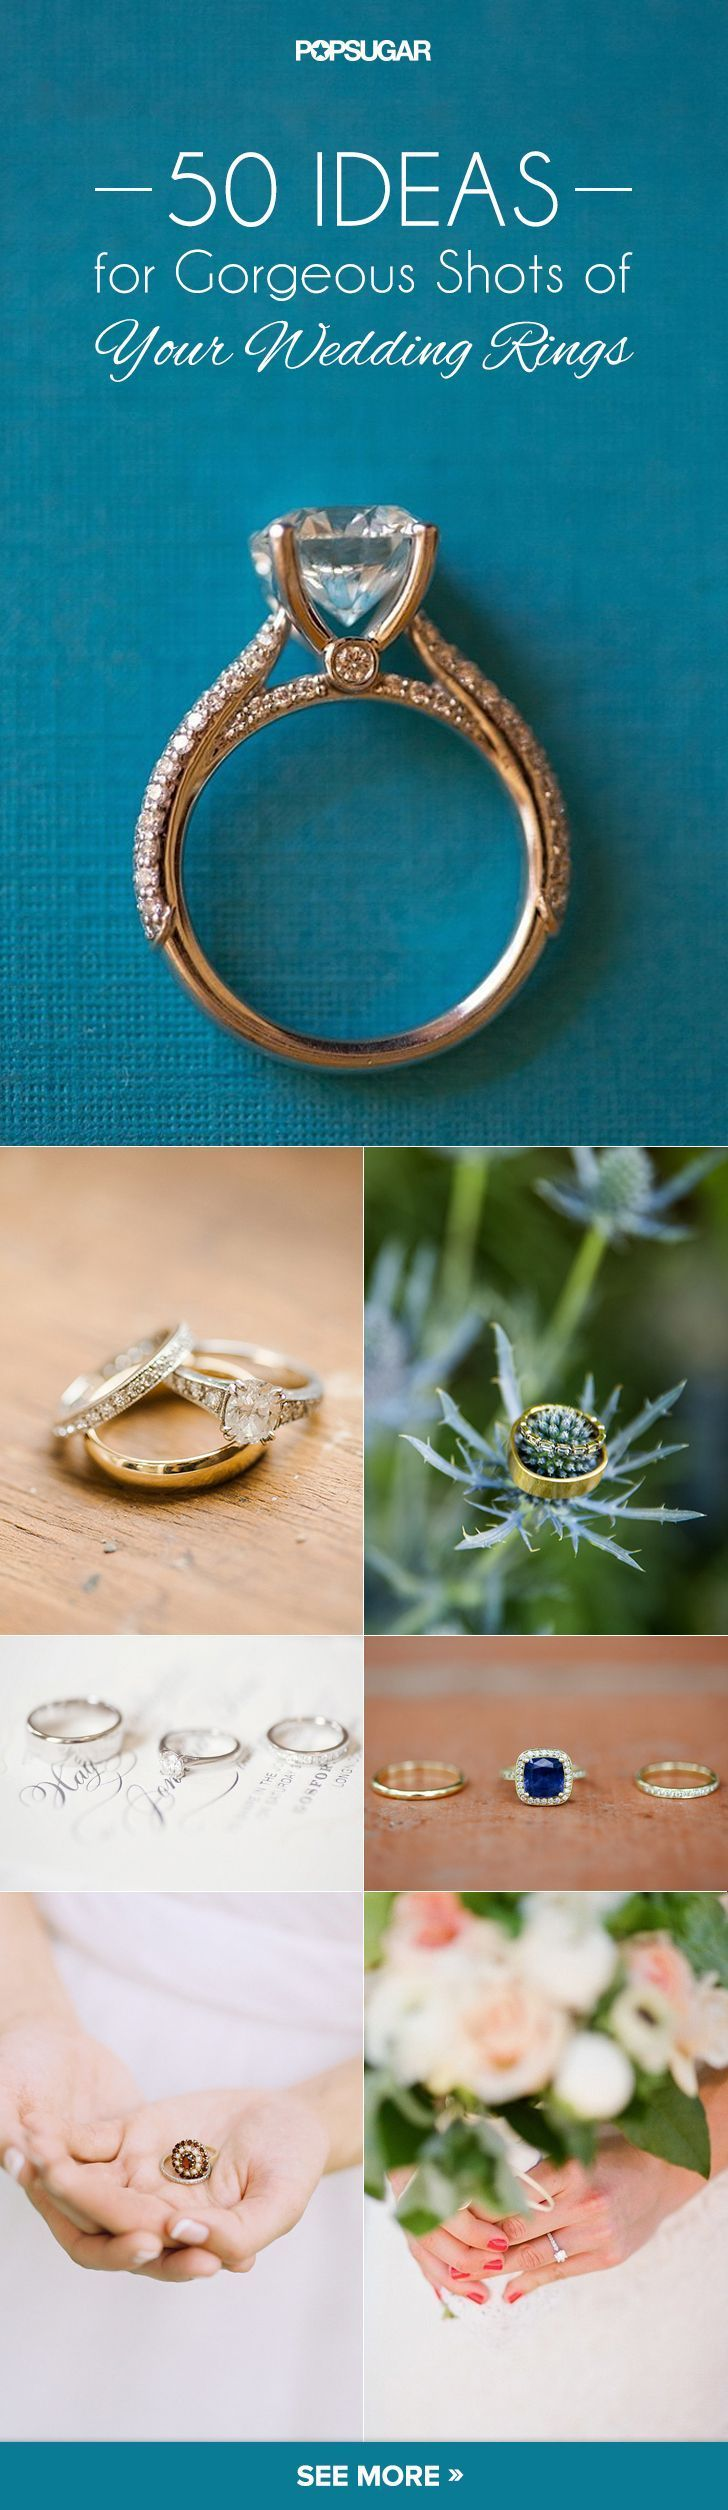 """The Wedding Ring Pictures You Have to Take on Your Big Day: photo ideas to take of your wedding bands before you say """"I do"""""""